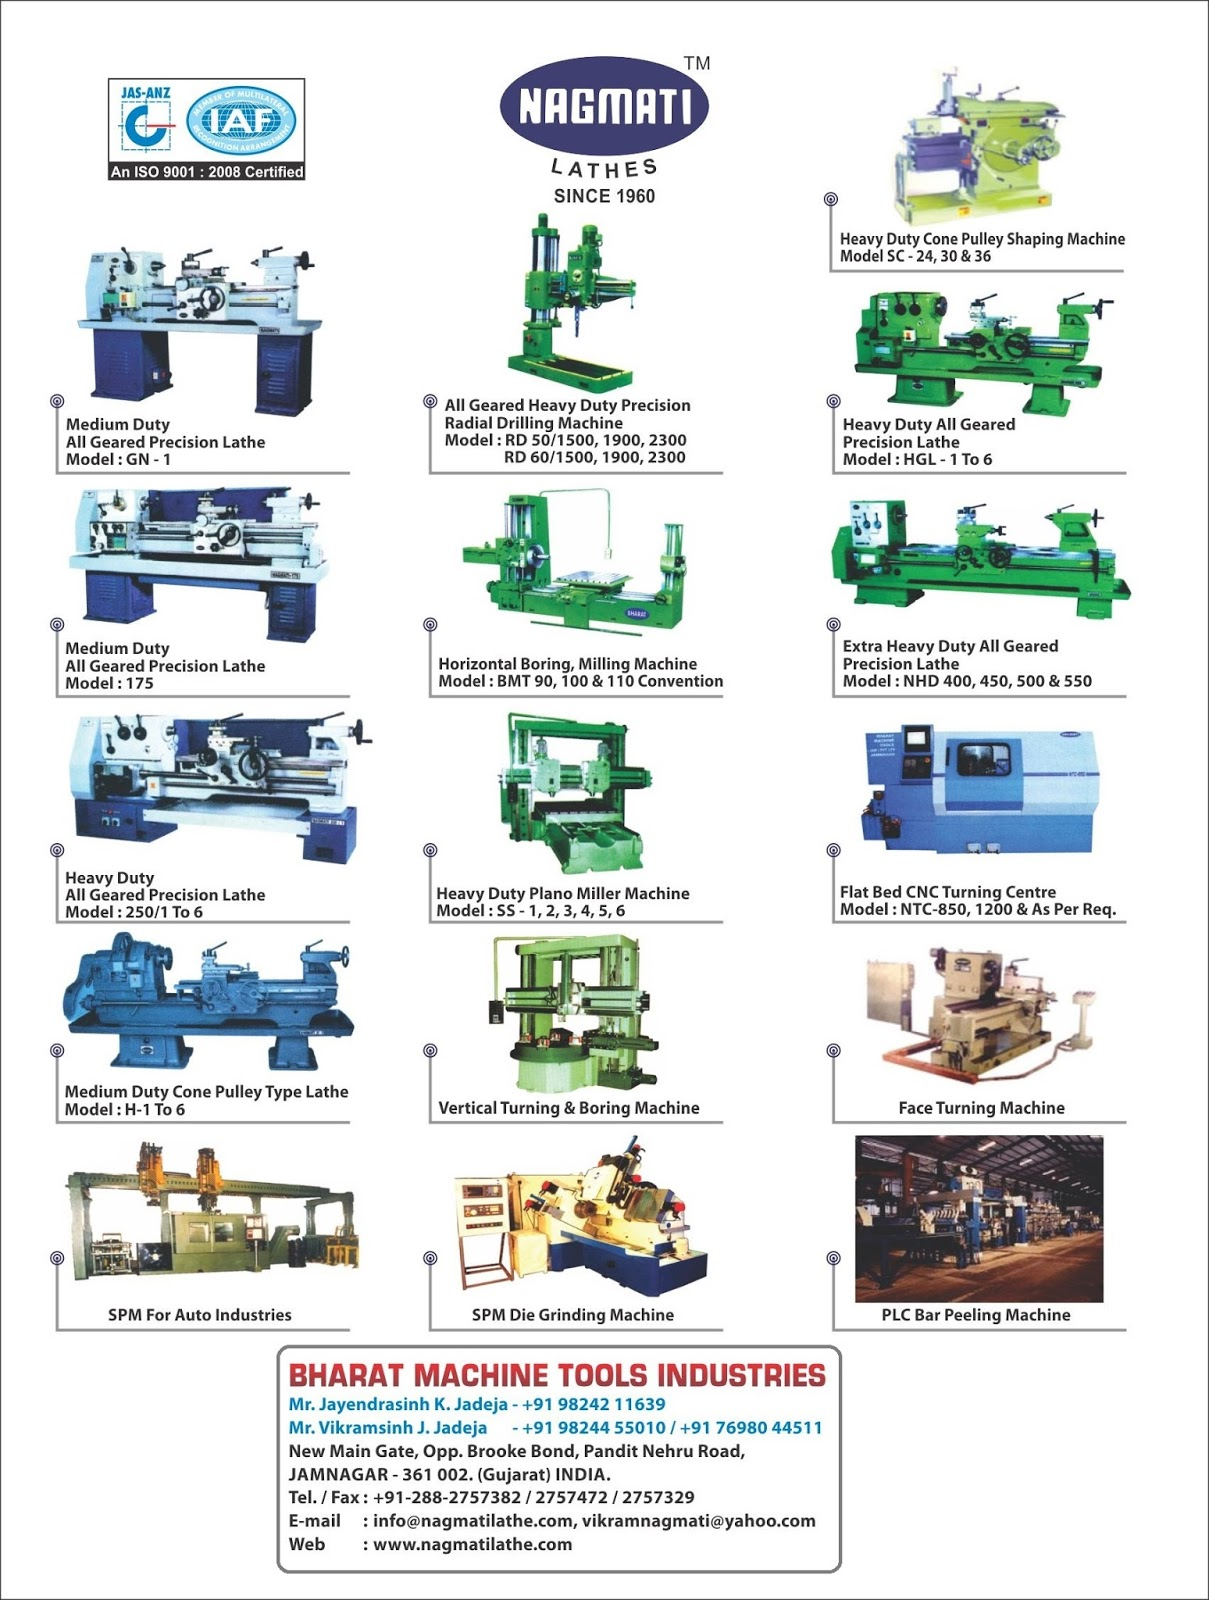 BHARAT MACHINE TOOLS INDUSTRIES - 9824455010